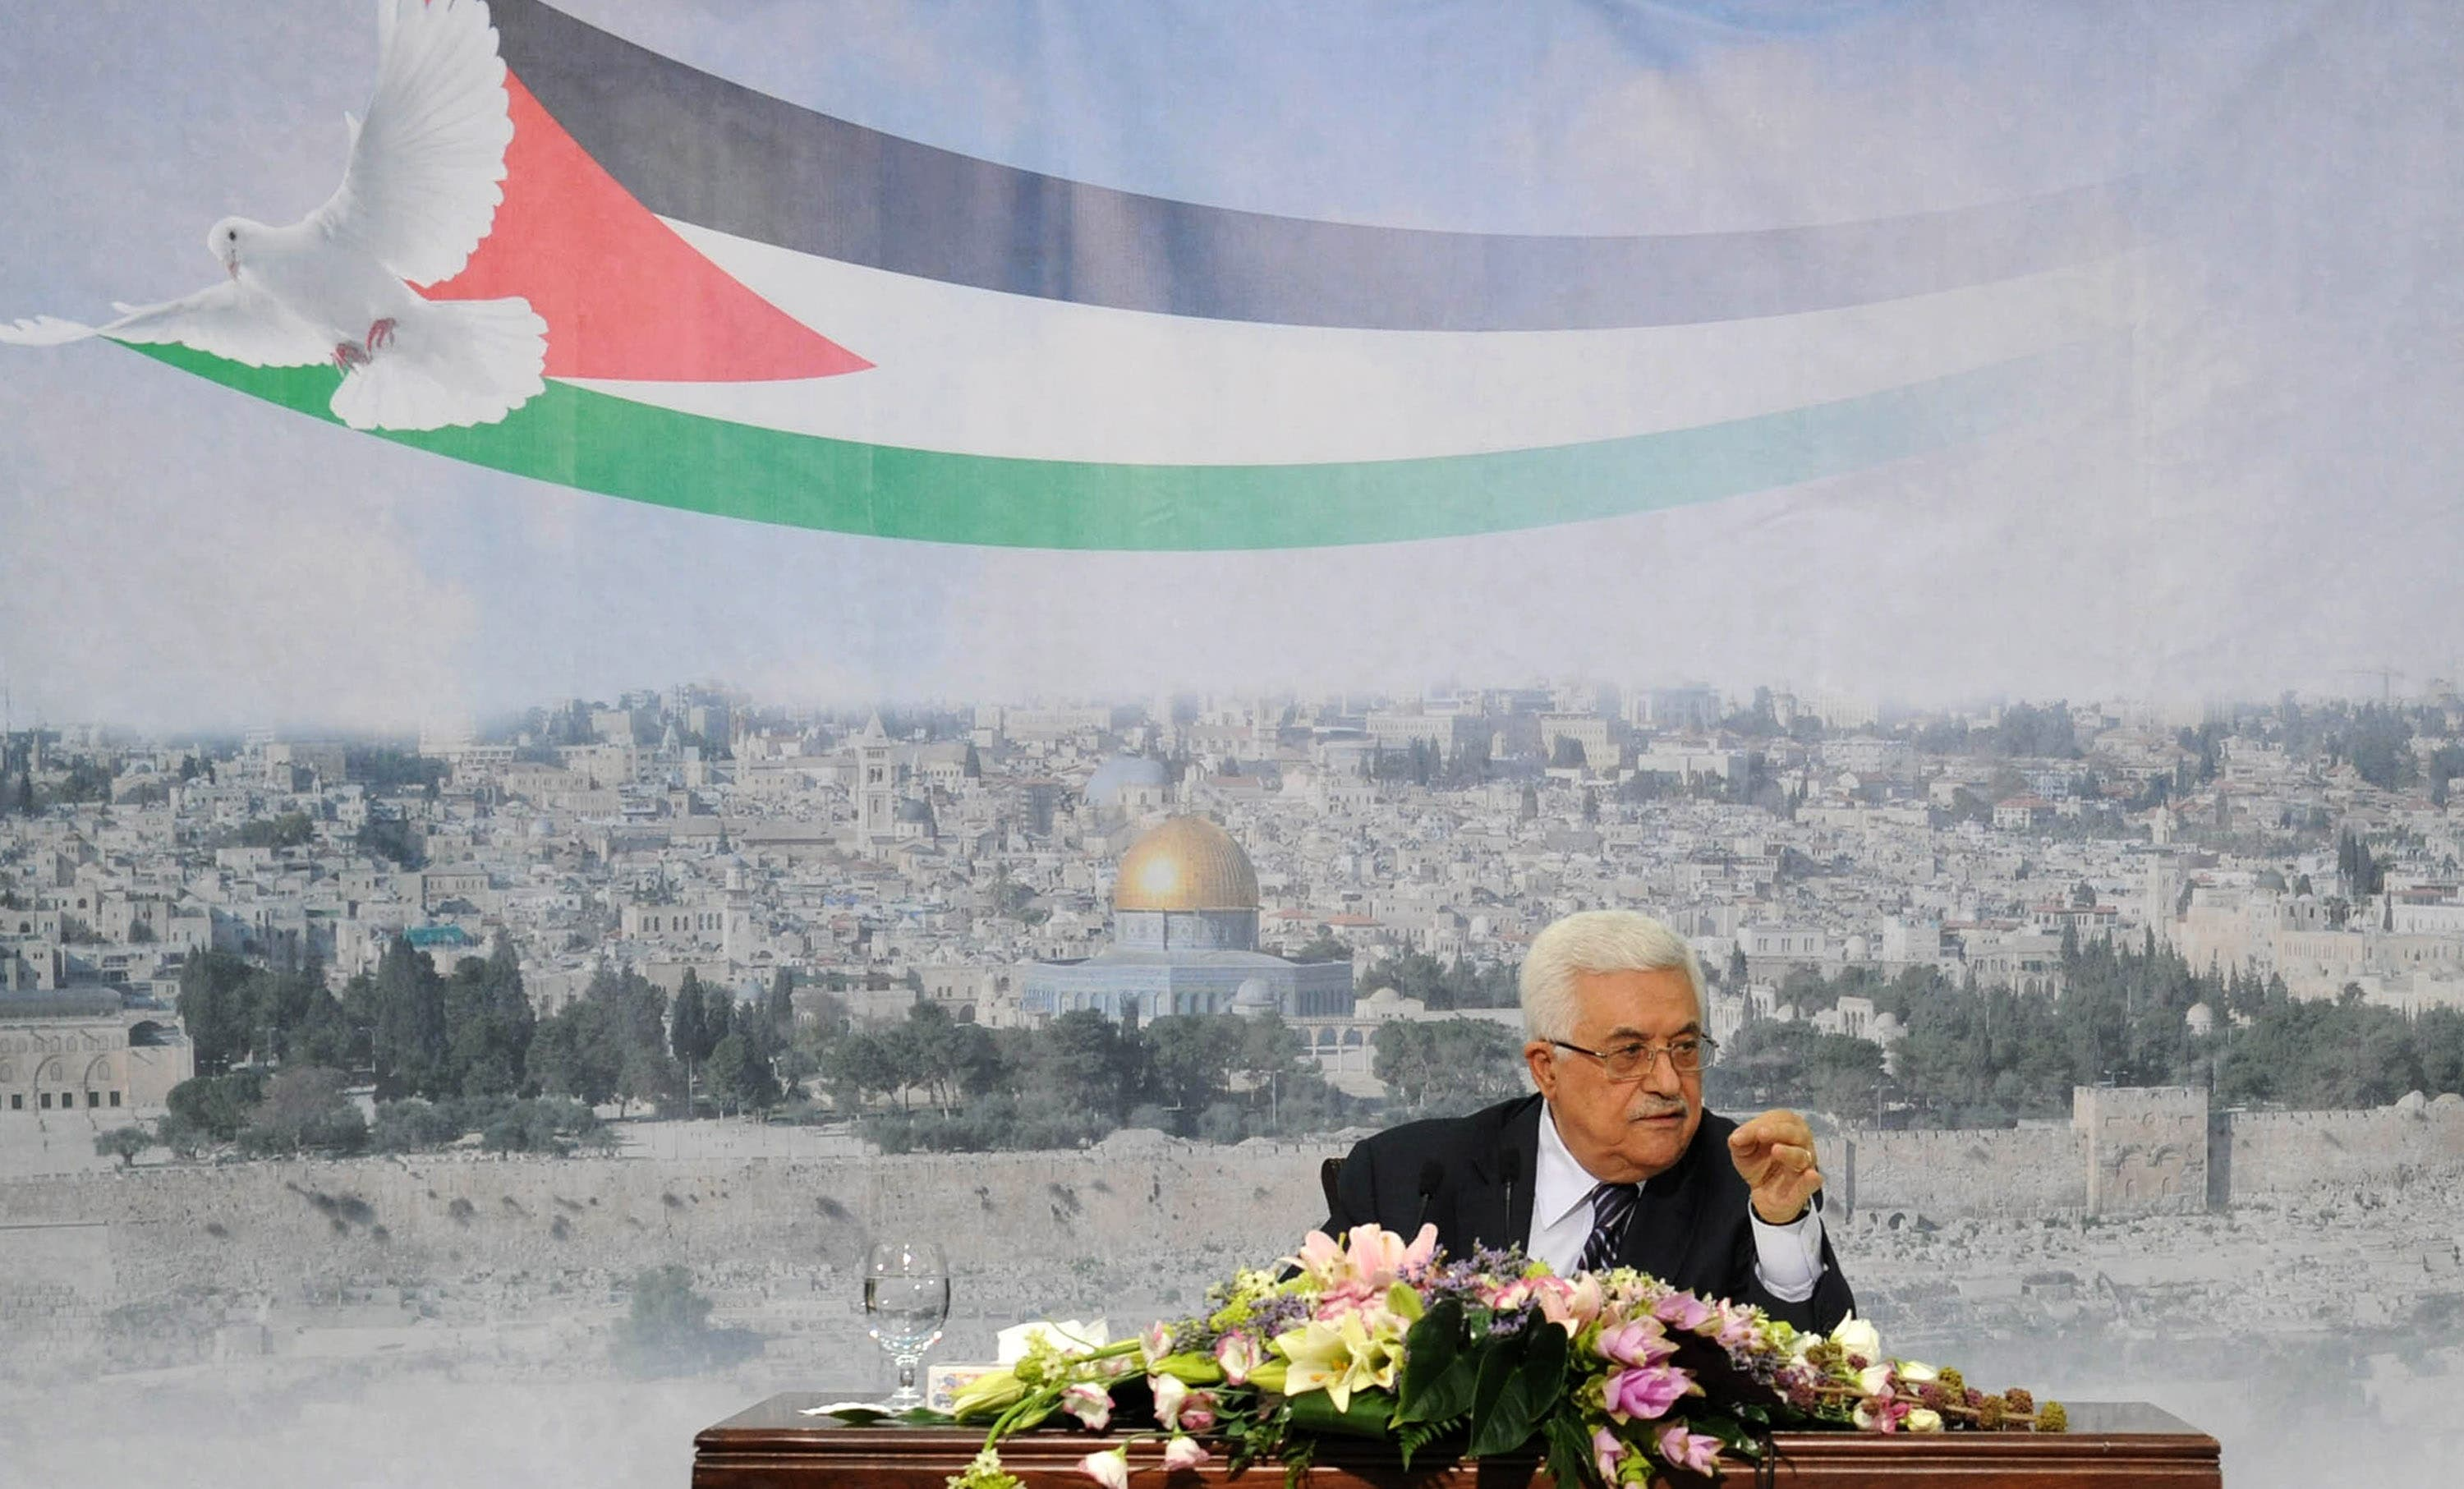 Perhaps a Palestinian state would be the ultimate bi-product to spring from the Arab Spring: It will be a peaceful contribution to a turbulent Middle East where all nations can coexist and flourish together.